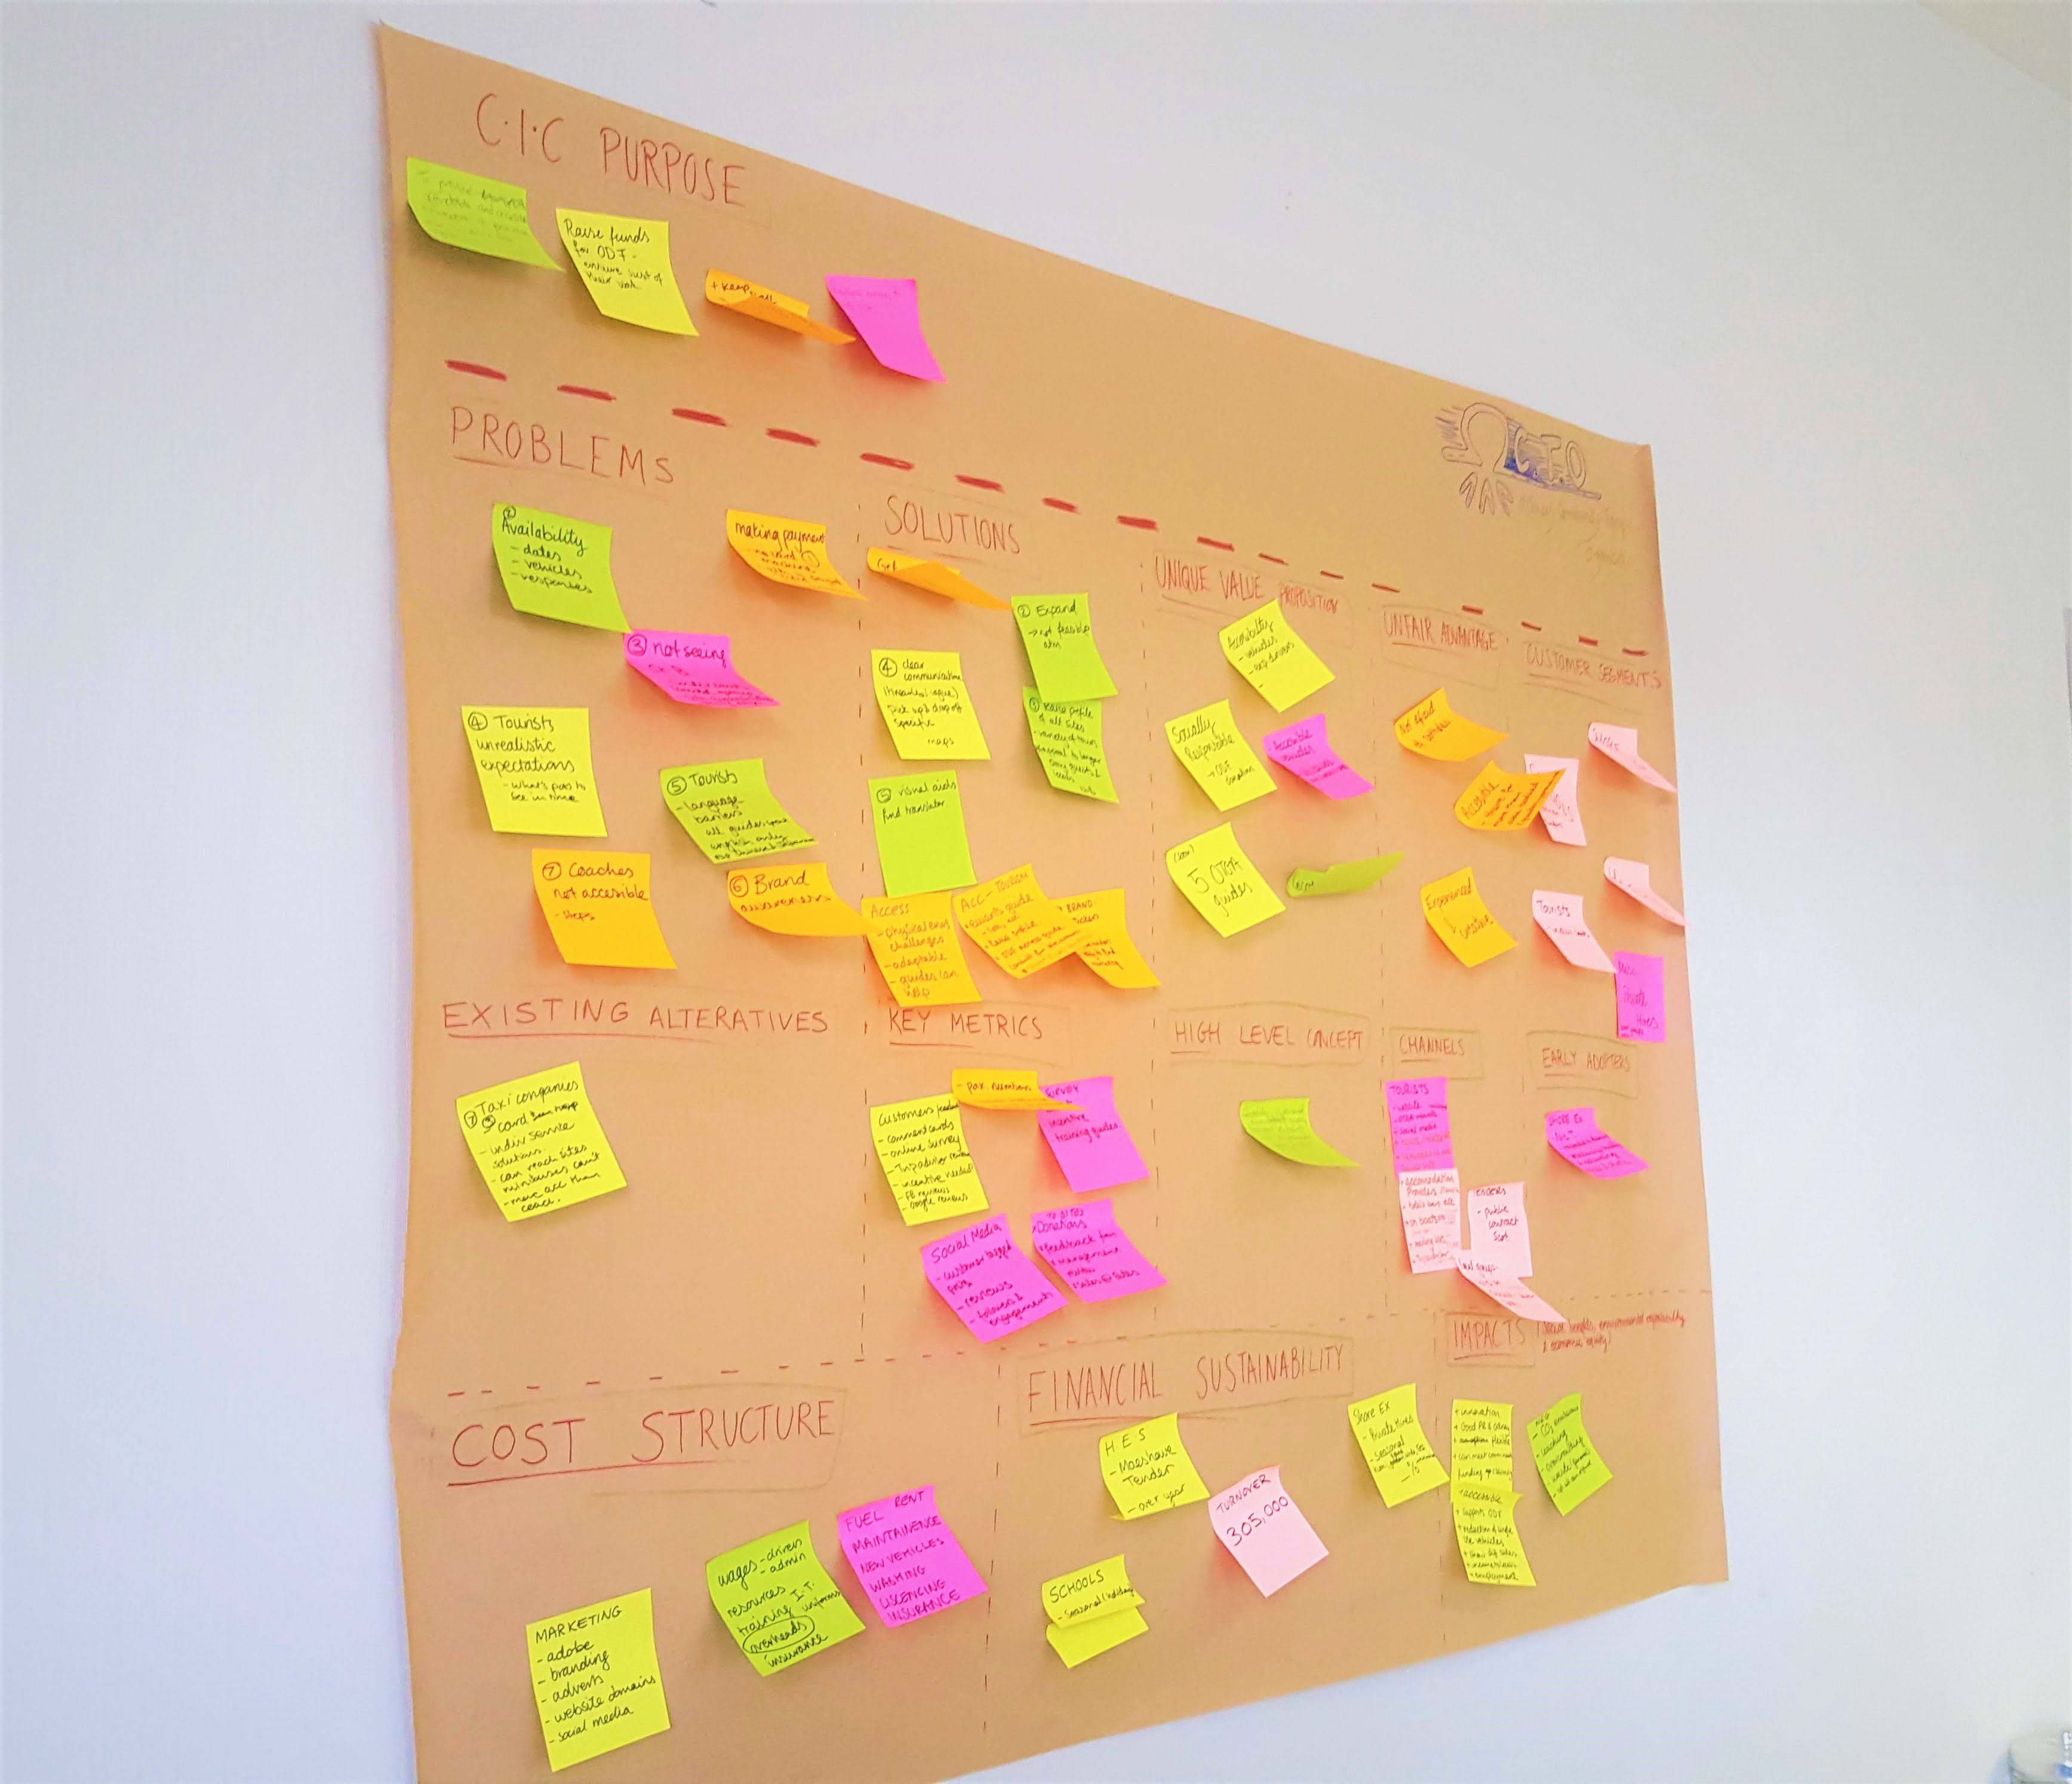 lean canvas on large brown paper with postit notes in different categories across the page